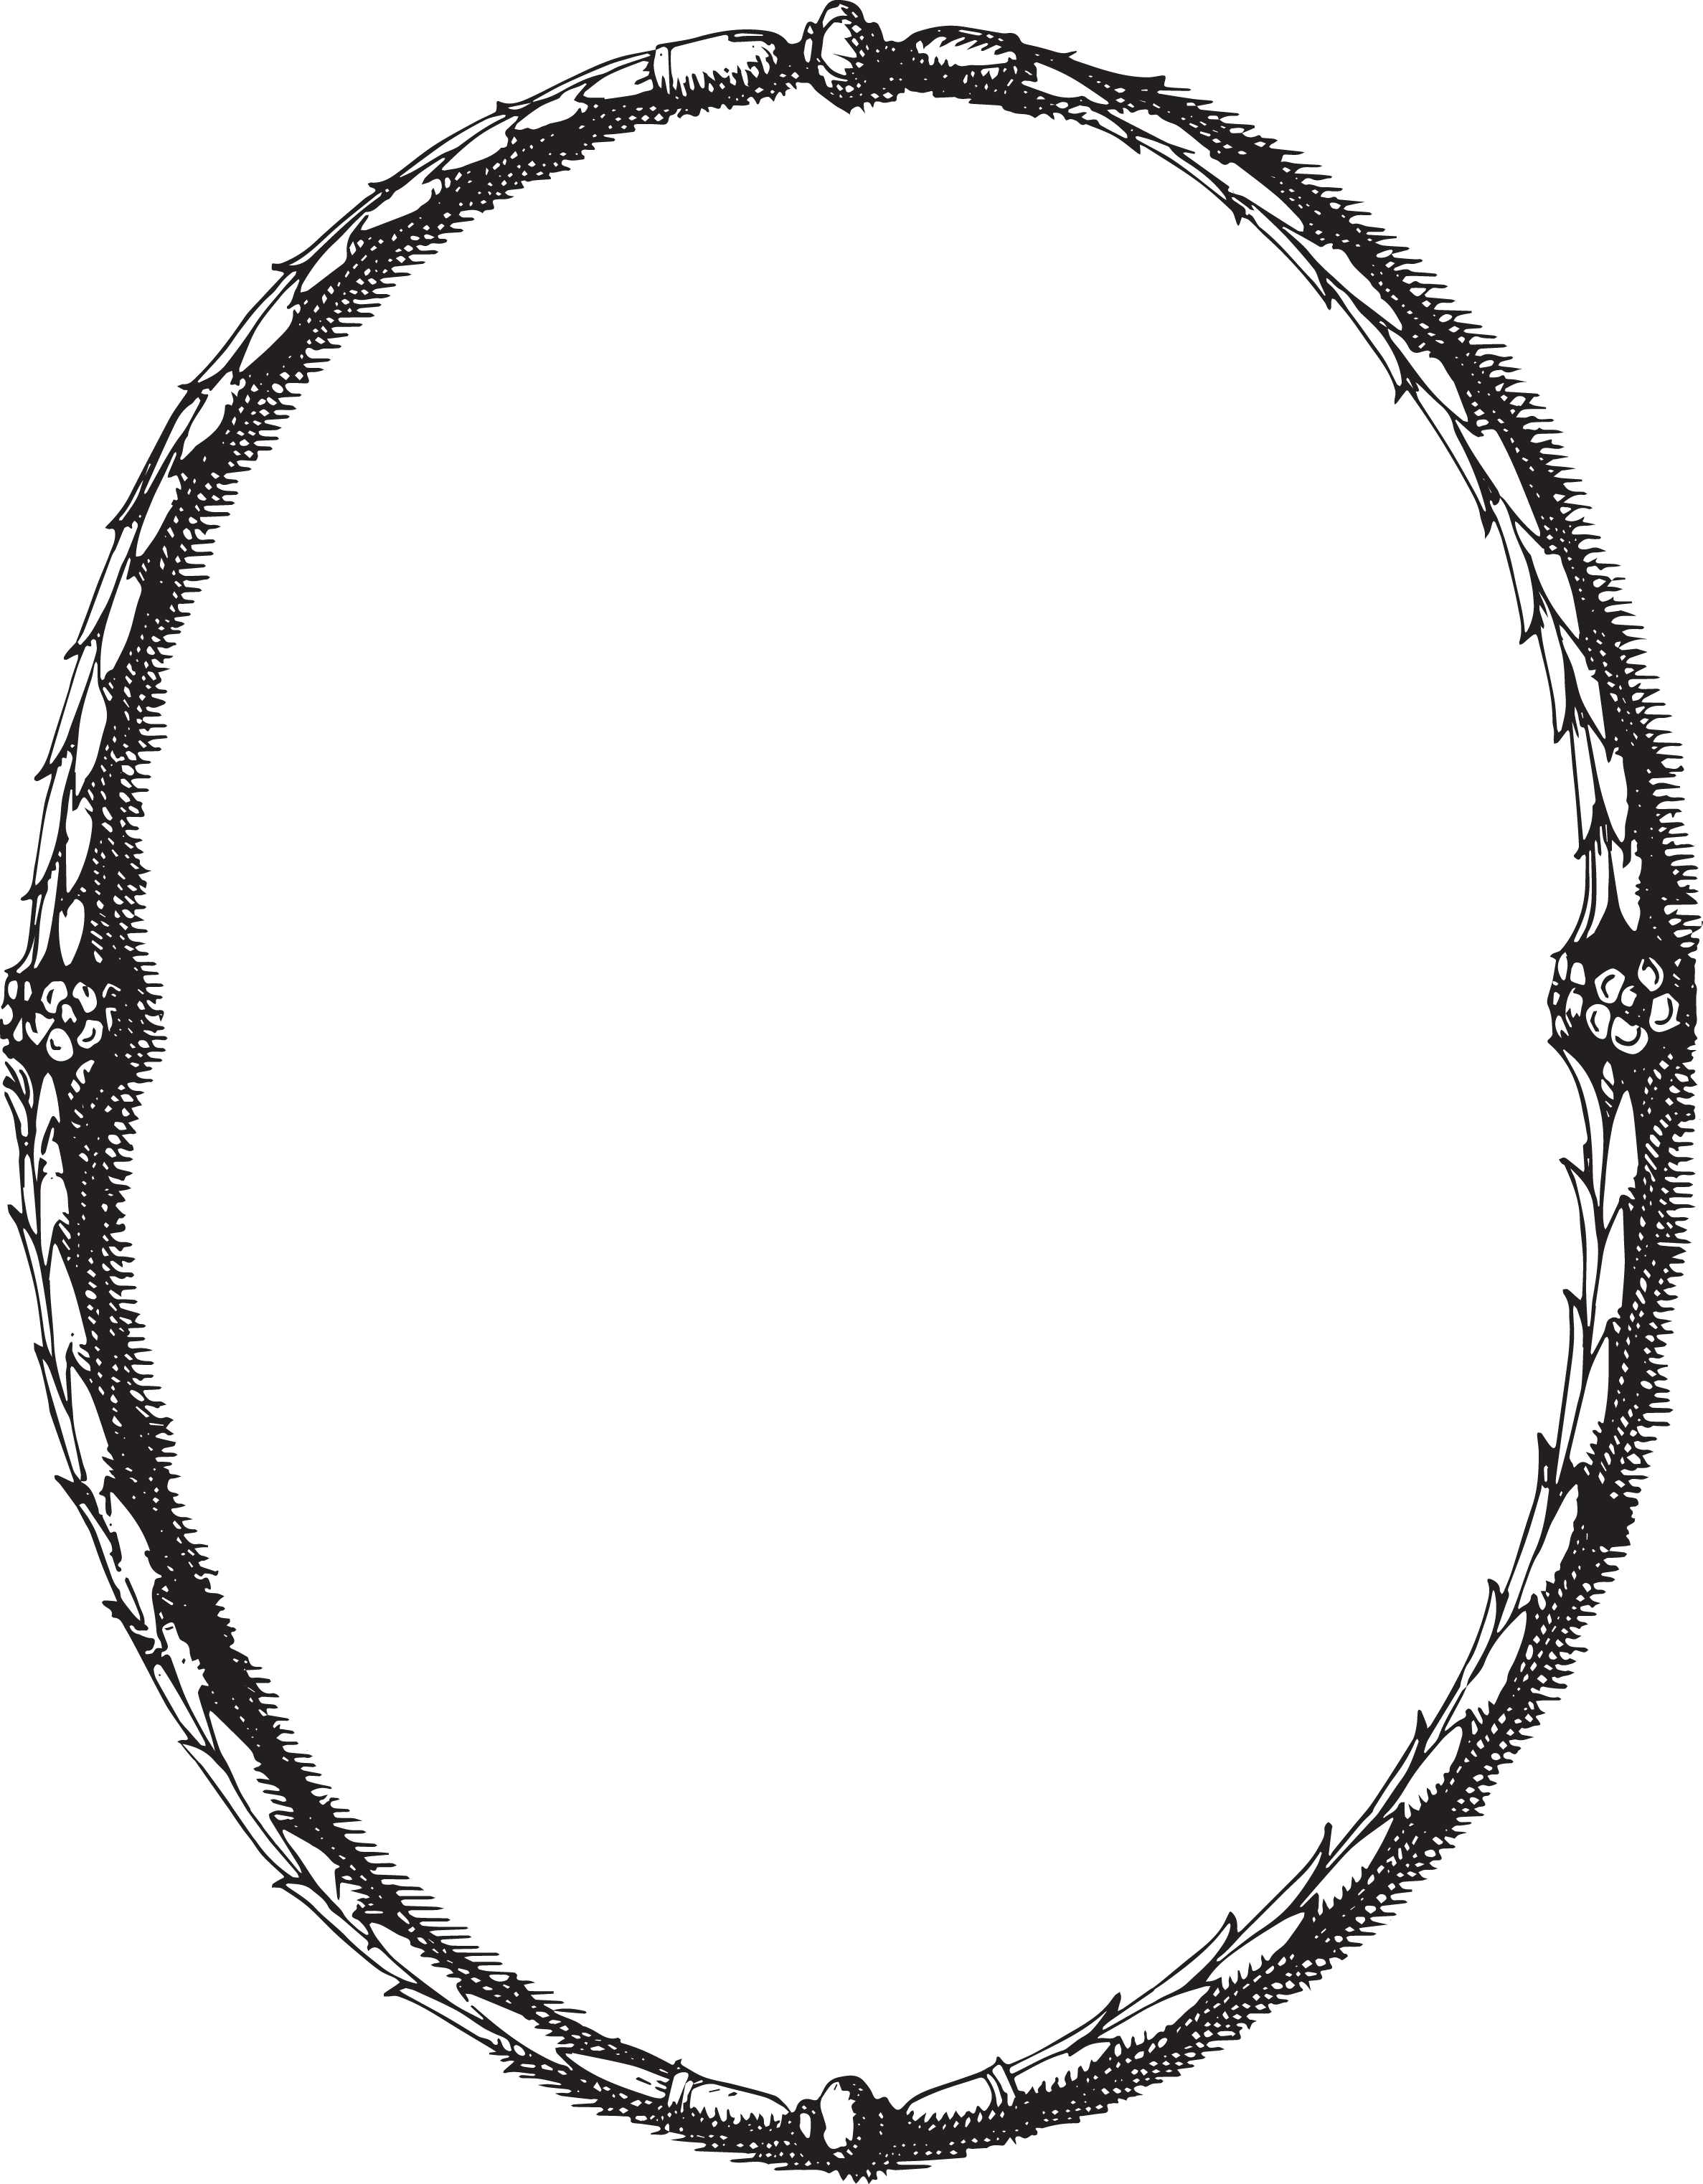 Circular saw blade png vecteezy. Laurel wreath google search